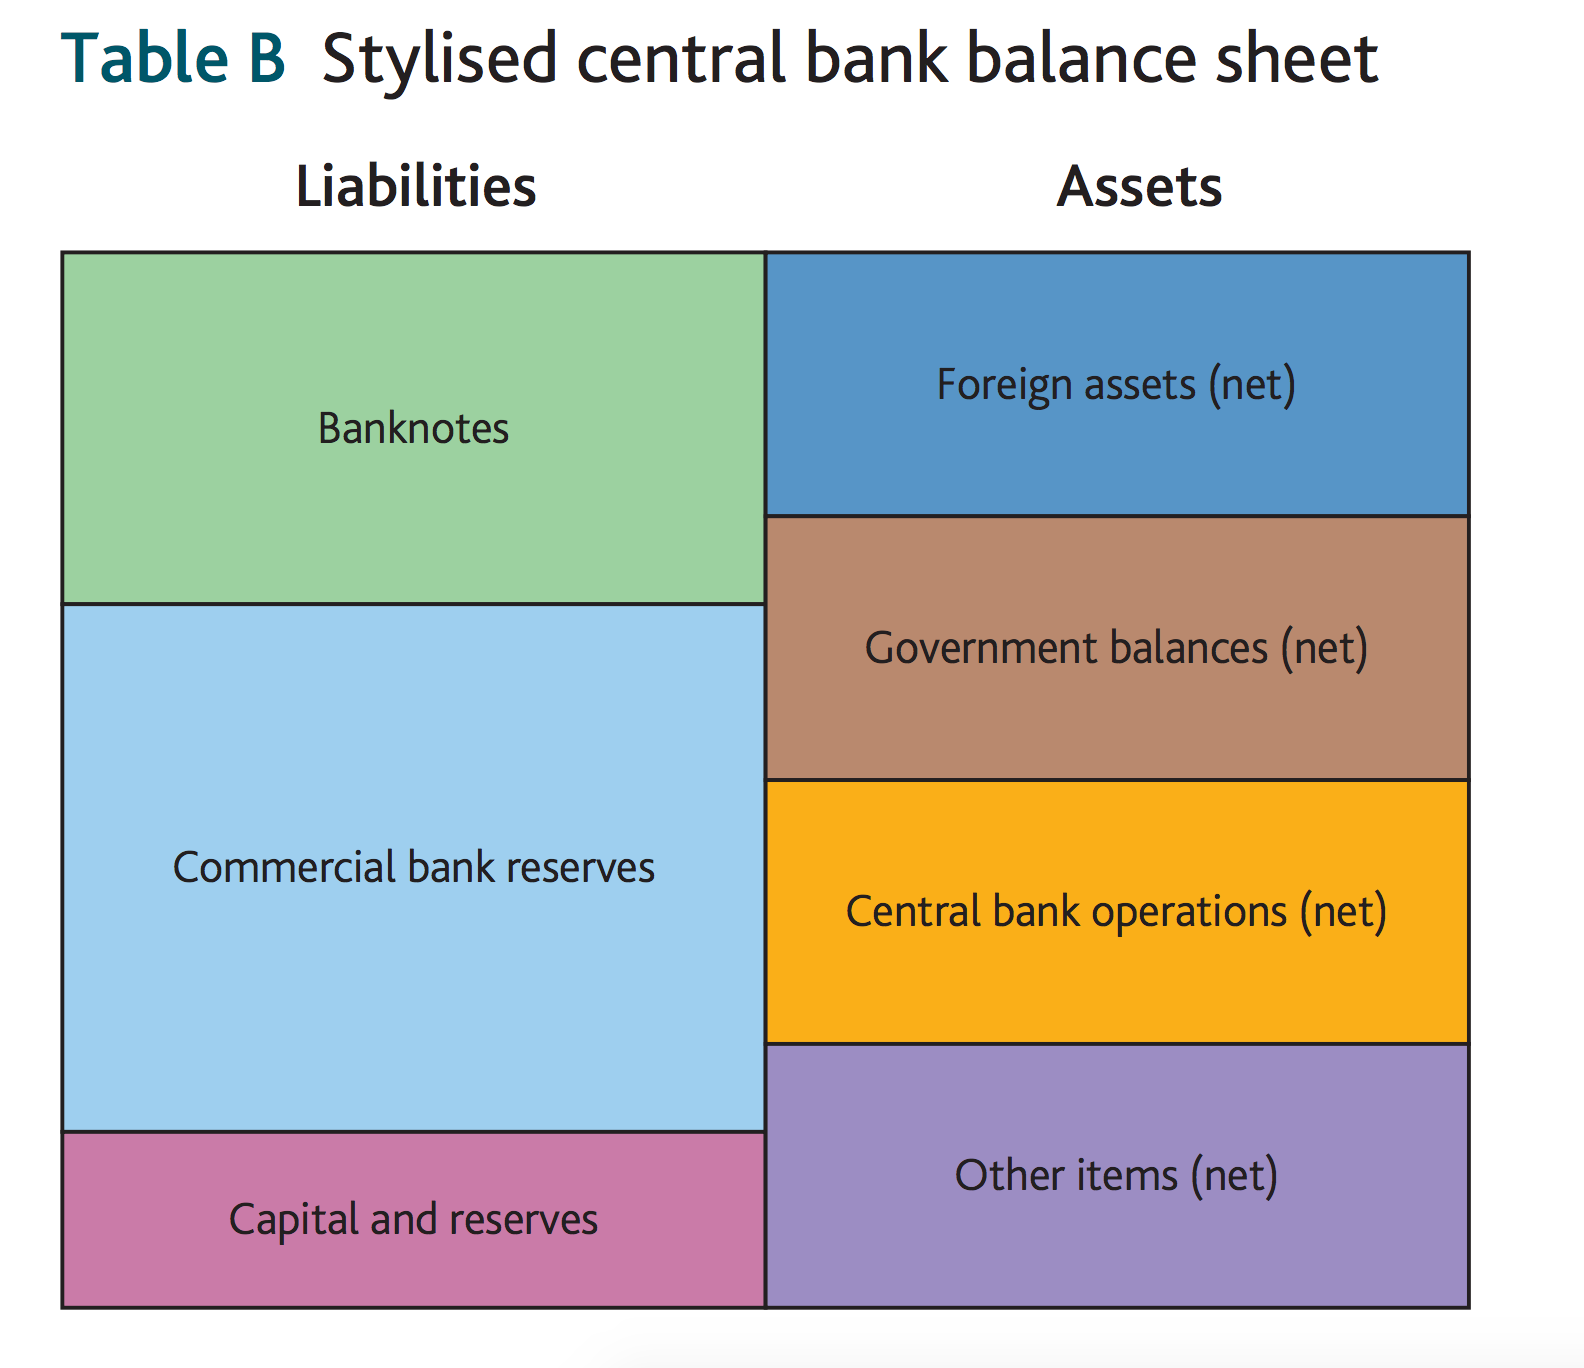 analysis of commercial bank balance sheet Updated annual balance sheet for jpmorgan chase & co - inluding jpm assets, cash, debt, liabilities & shareholder equity, investments, retained earnings.